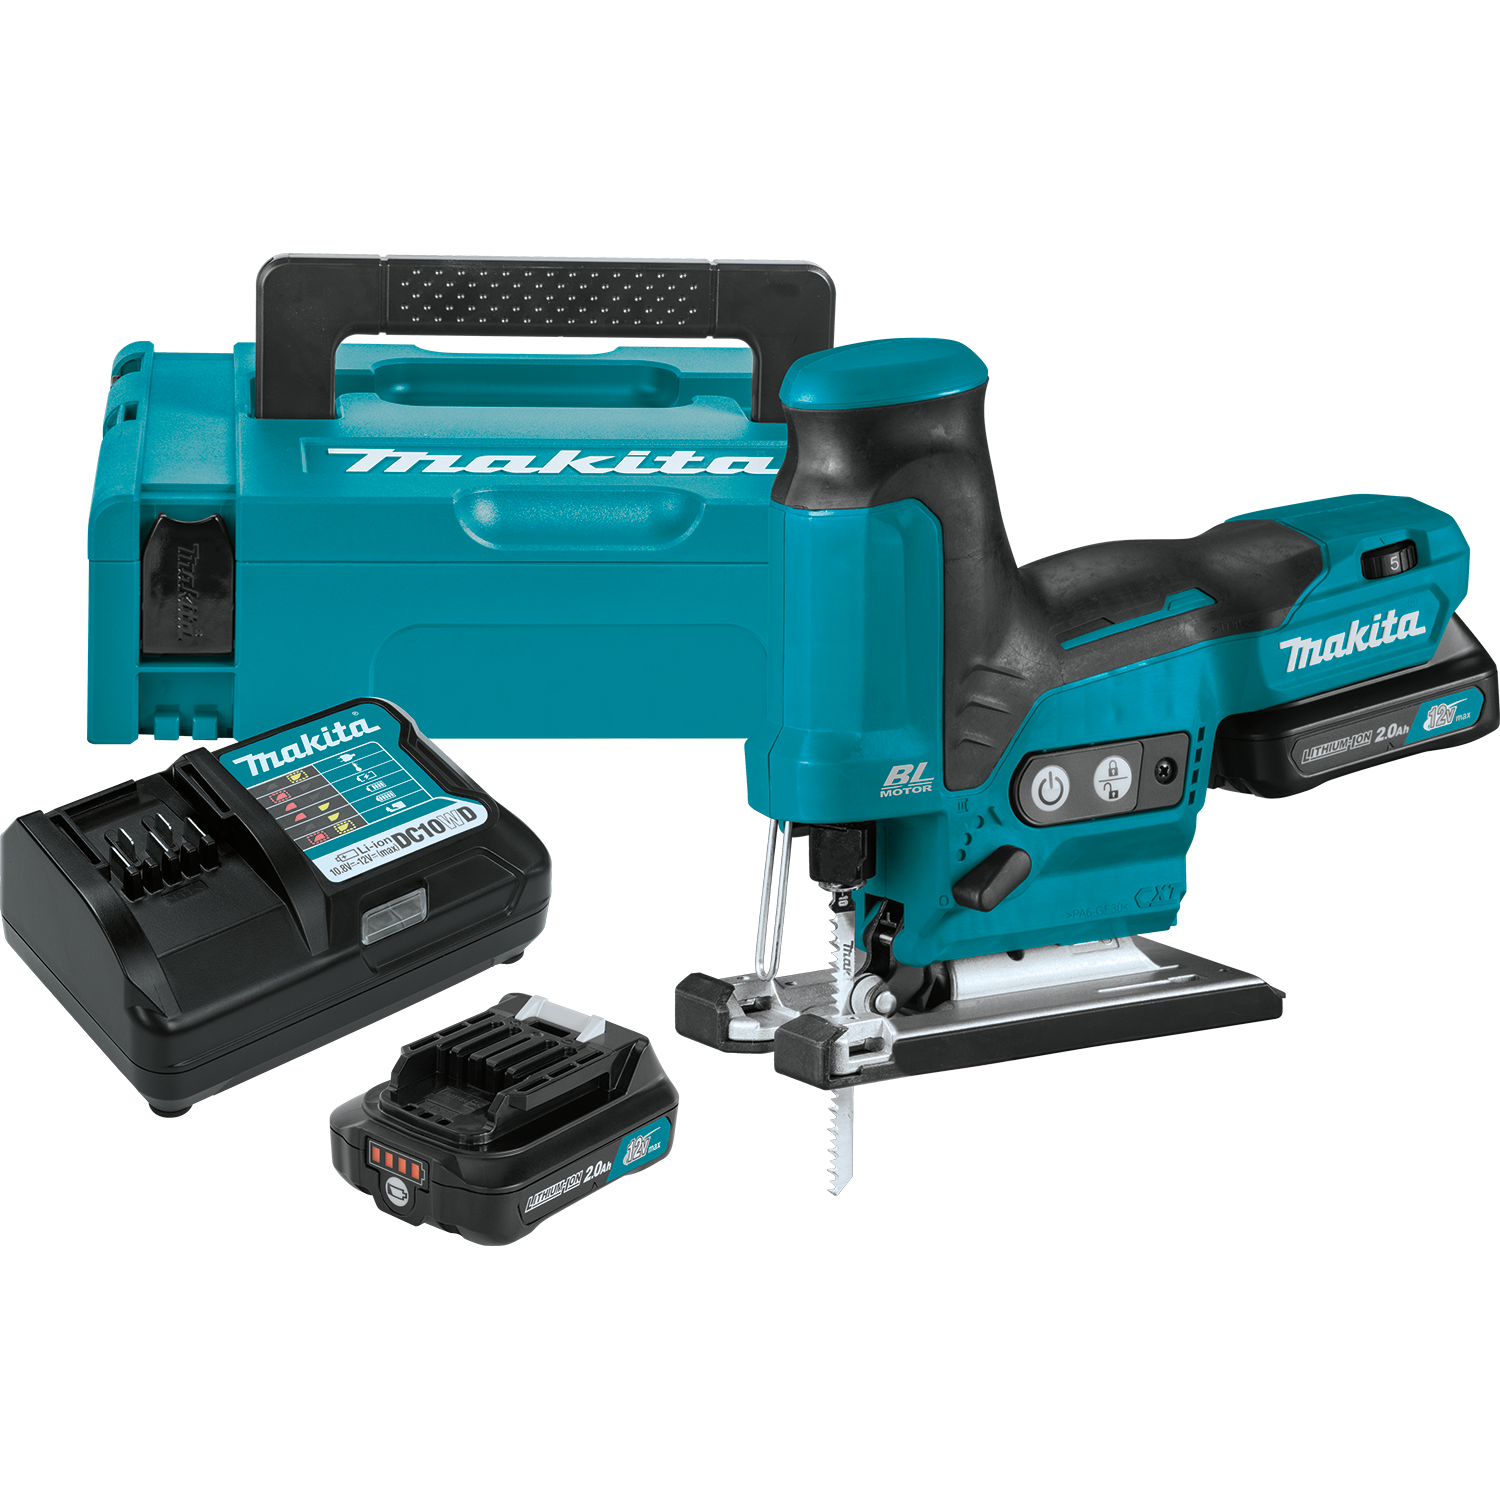 The Bulgarian Makita is a reliable and convenient tool